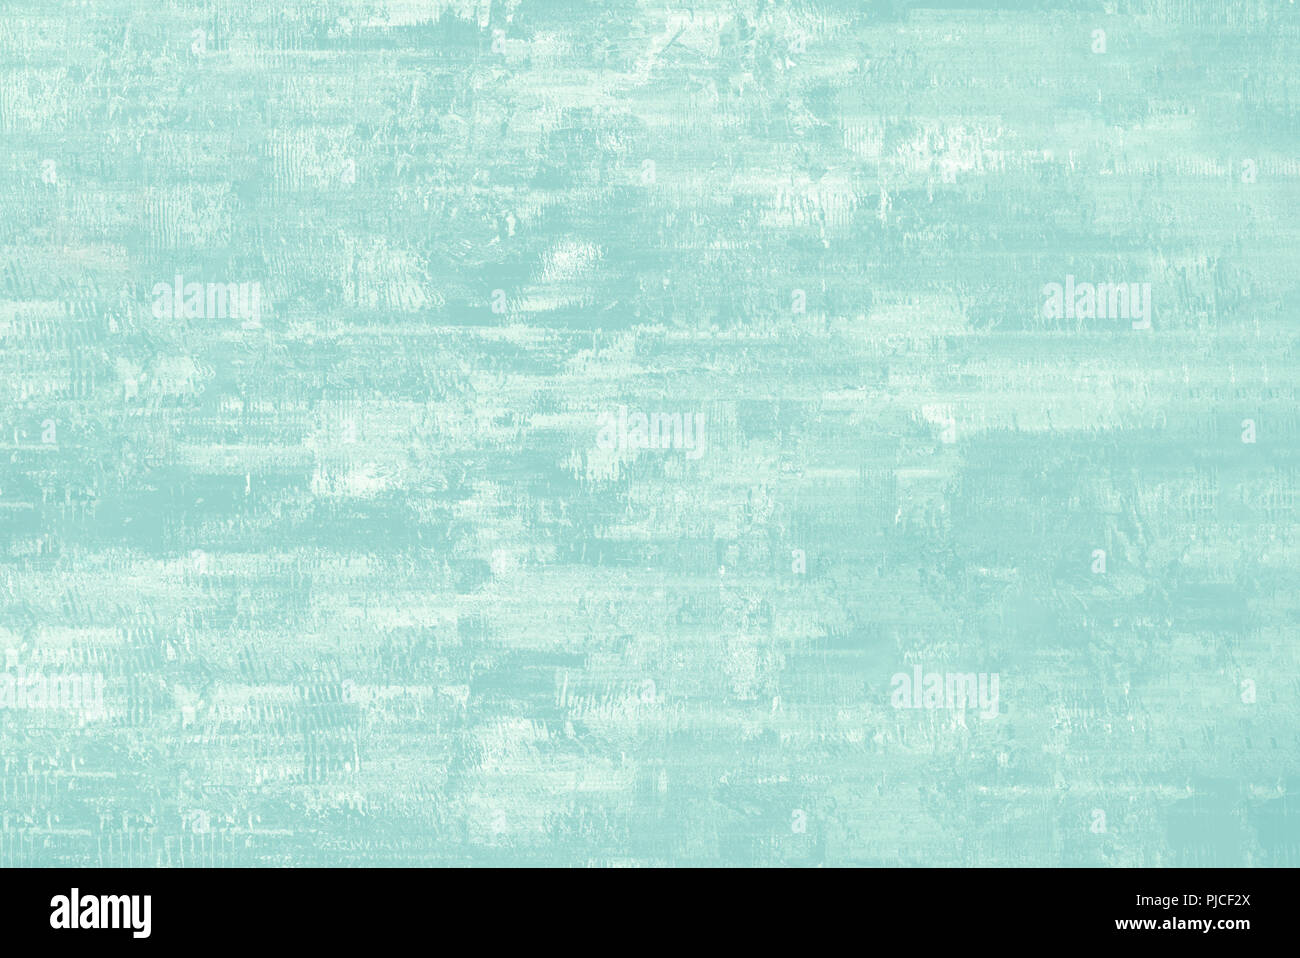 Abstract background in aqua blue and white with patchy, painterly appearance. - Stock Image